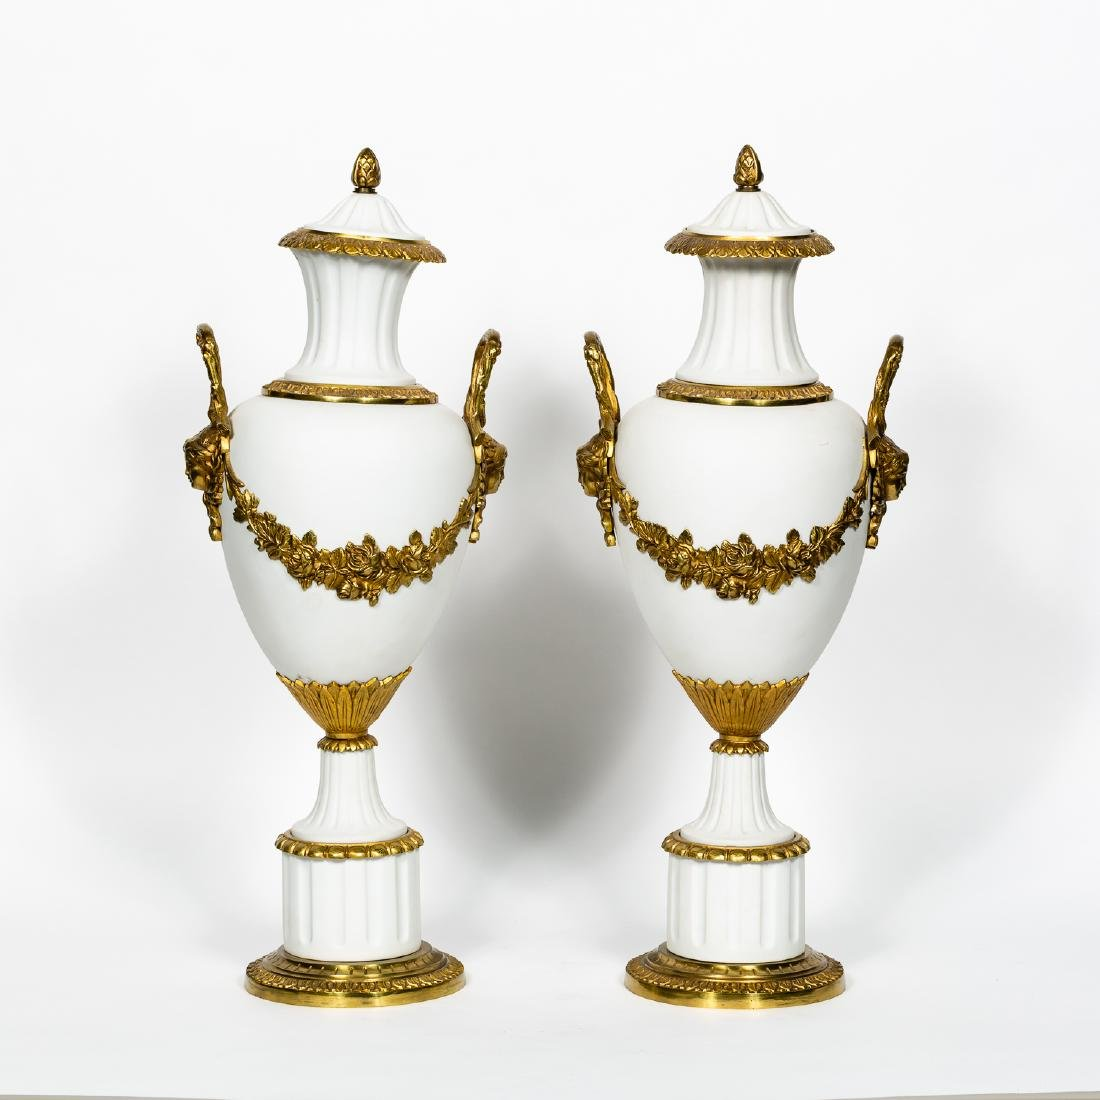 Pair of Neoclassical Bisque & Brass Accented Urns